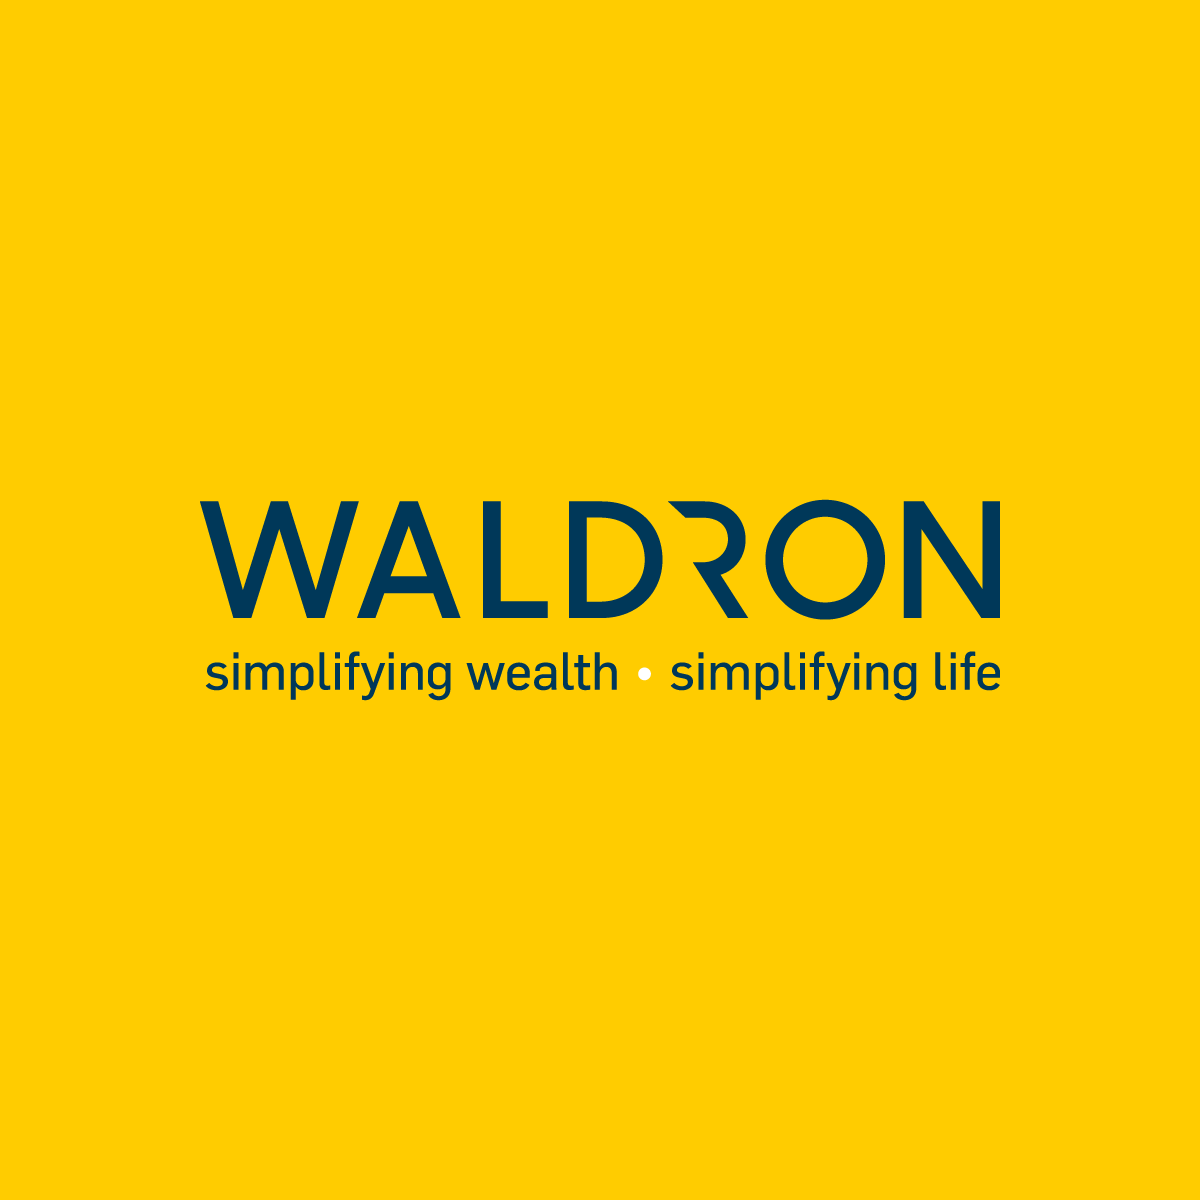 Waldron's rebranding included renaming and revision of the mantra to better embody the brand strategy.